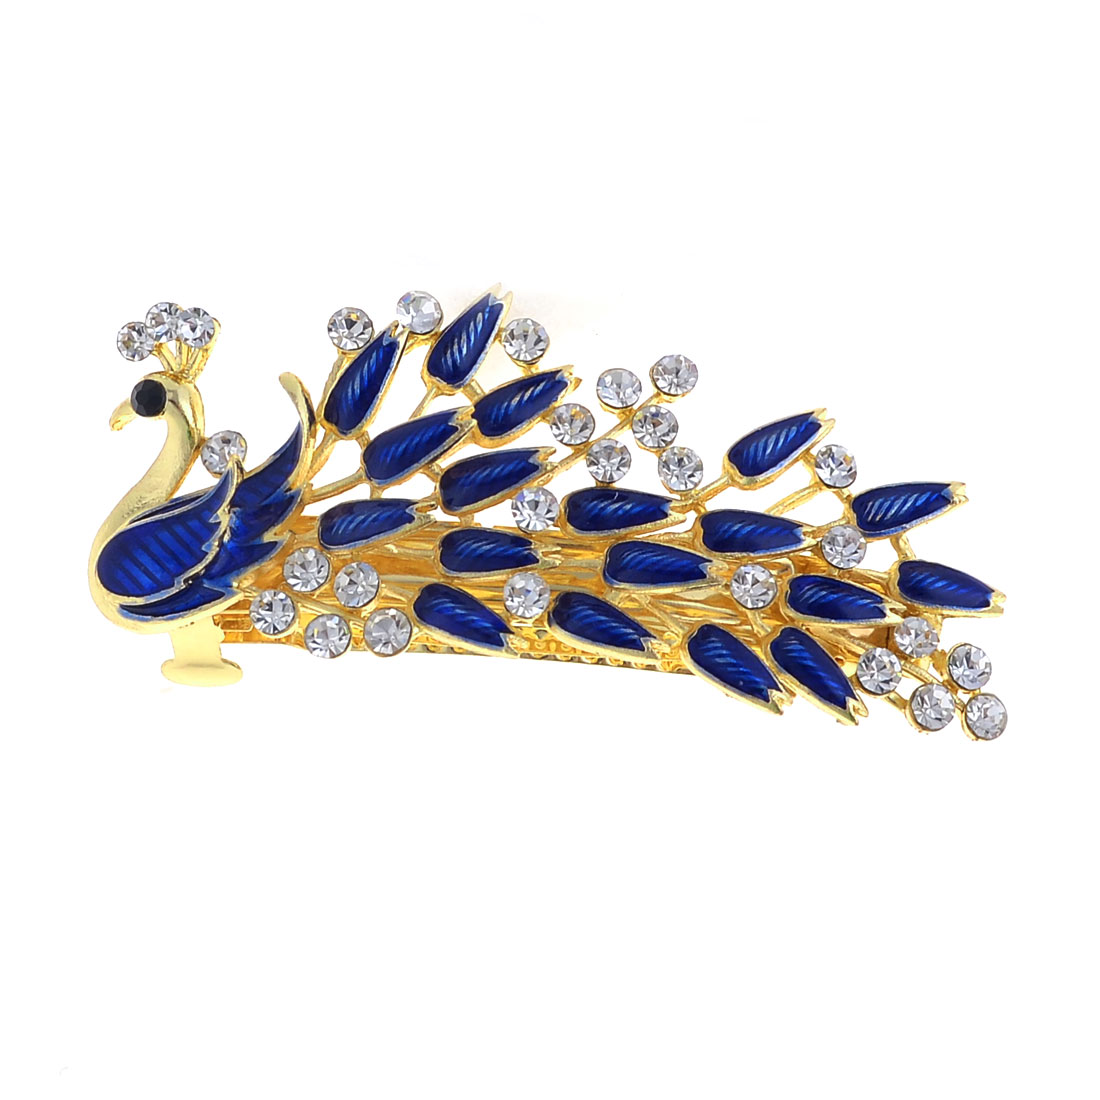 Lady Royal Blue Peacock Design Shiny Faux Rhinestone Inlay Barrette French Clip